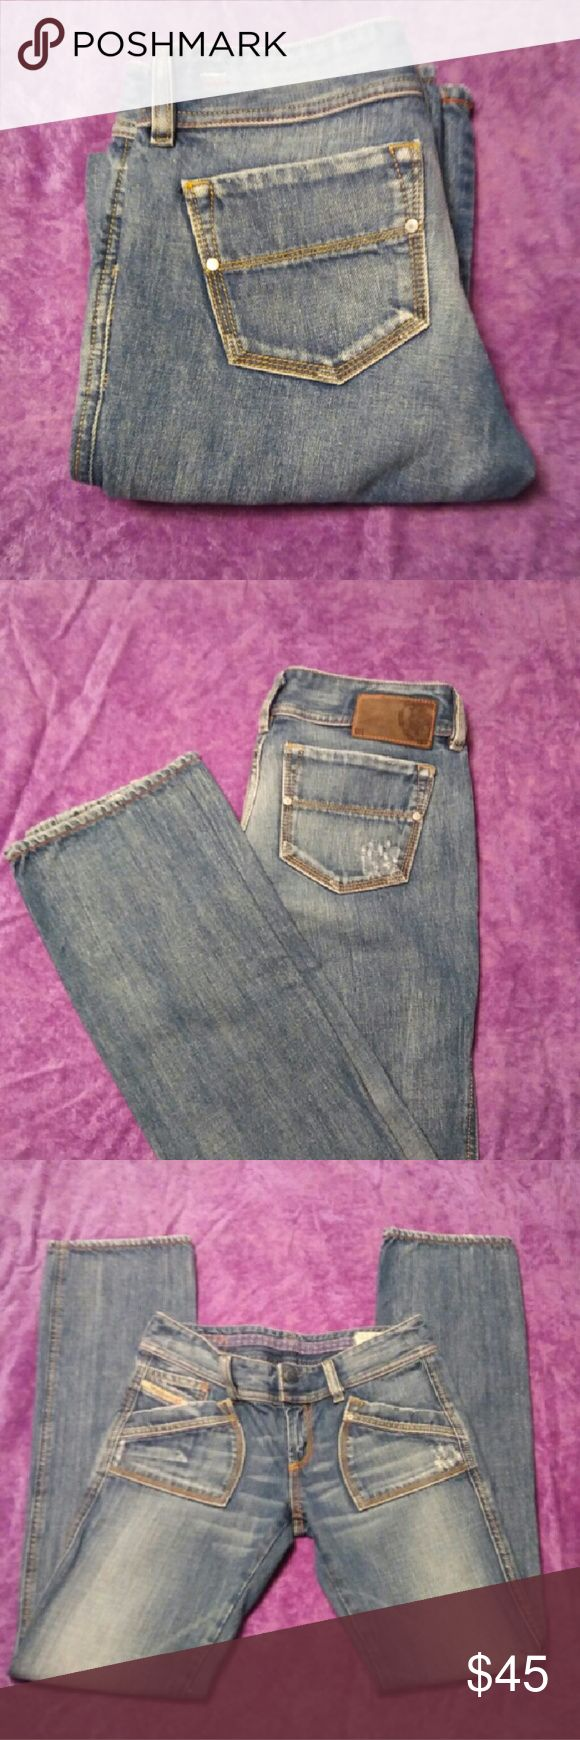 Ladies Deisel Jeans NWOT Ladies Deisel Jeans NWOT, tag says 27W 32L fits like a 25W. Medium wash with light wash on the fronts of the thighs. Diesel Jeans Straight Leg